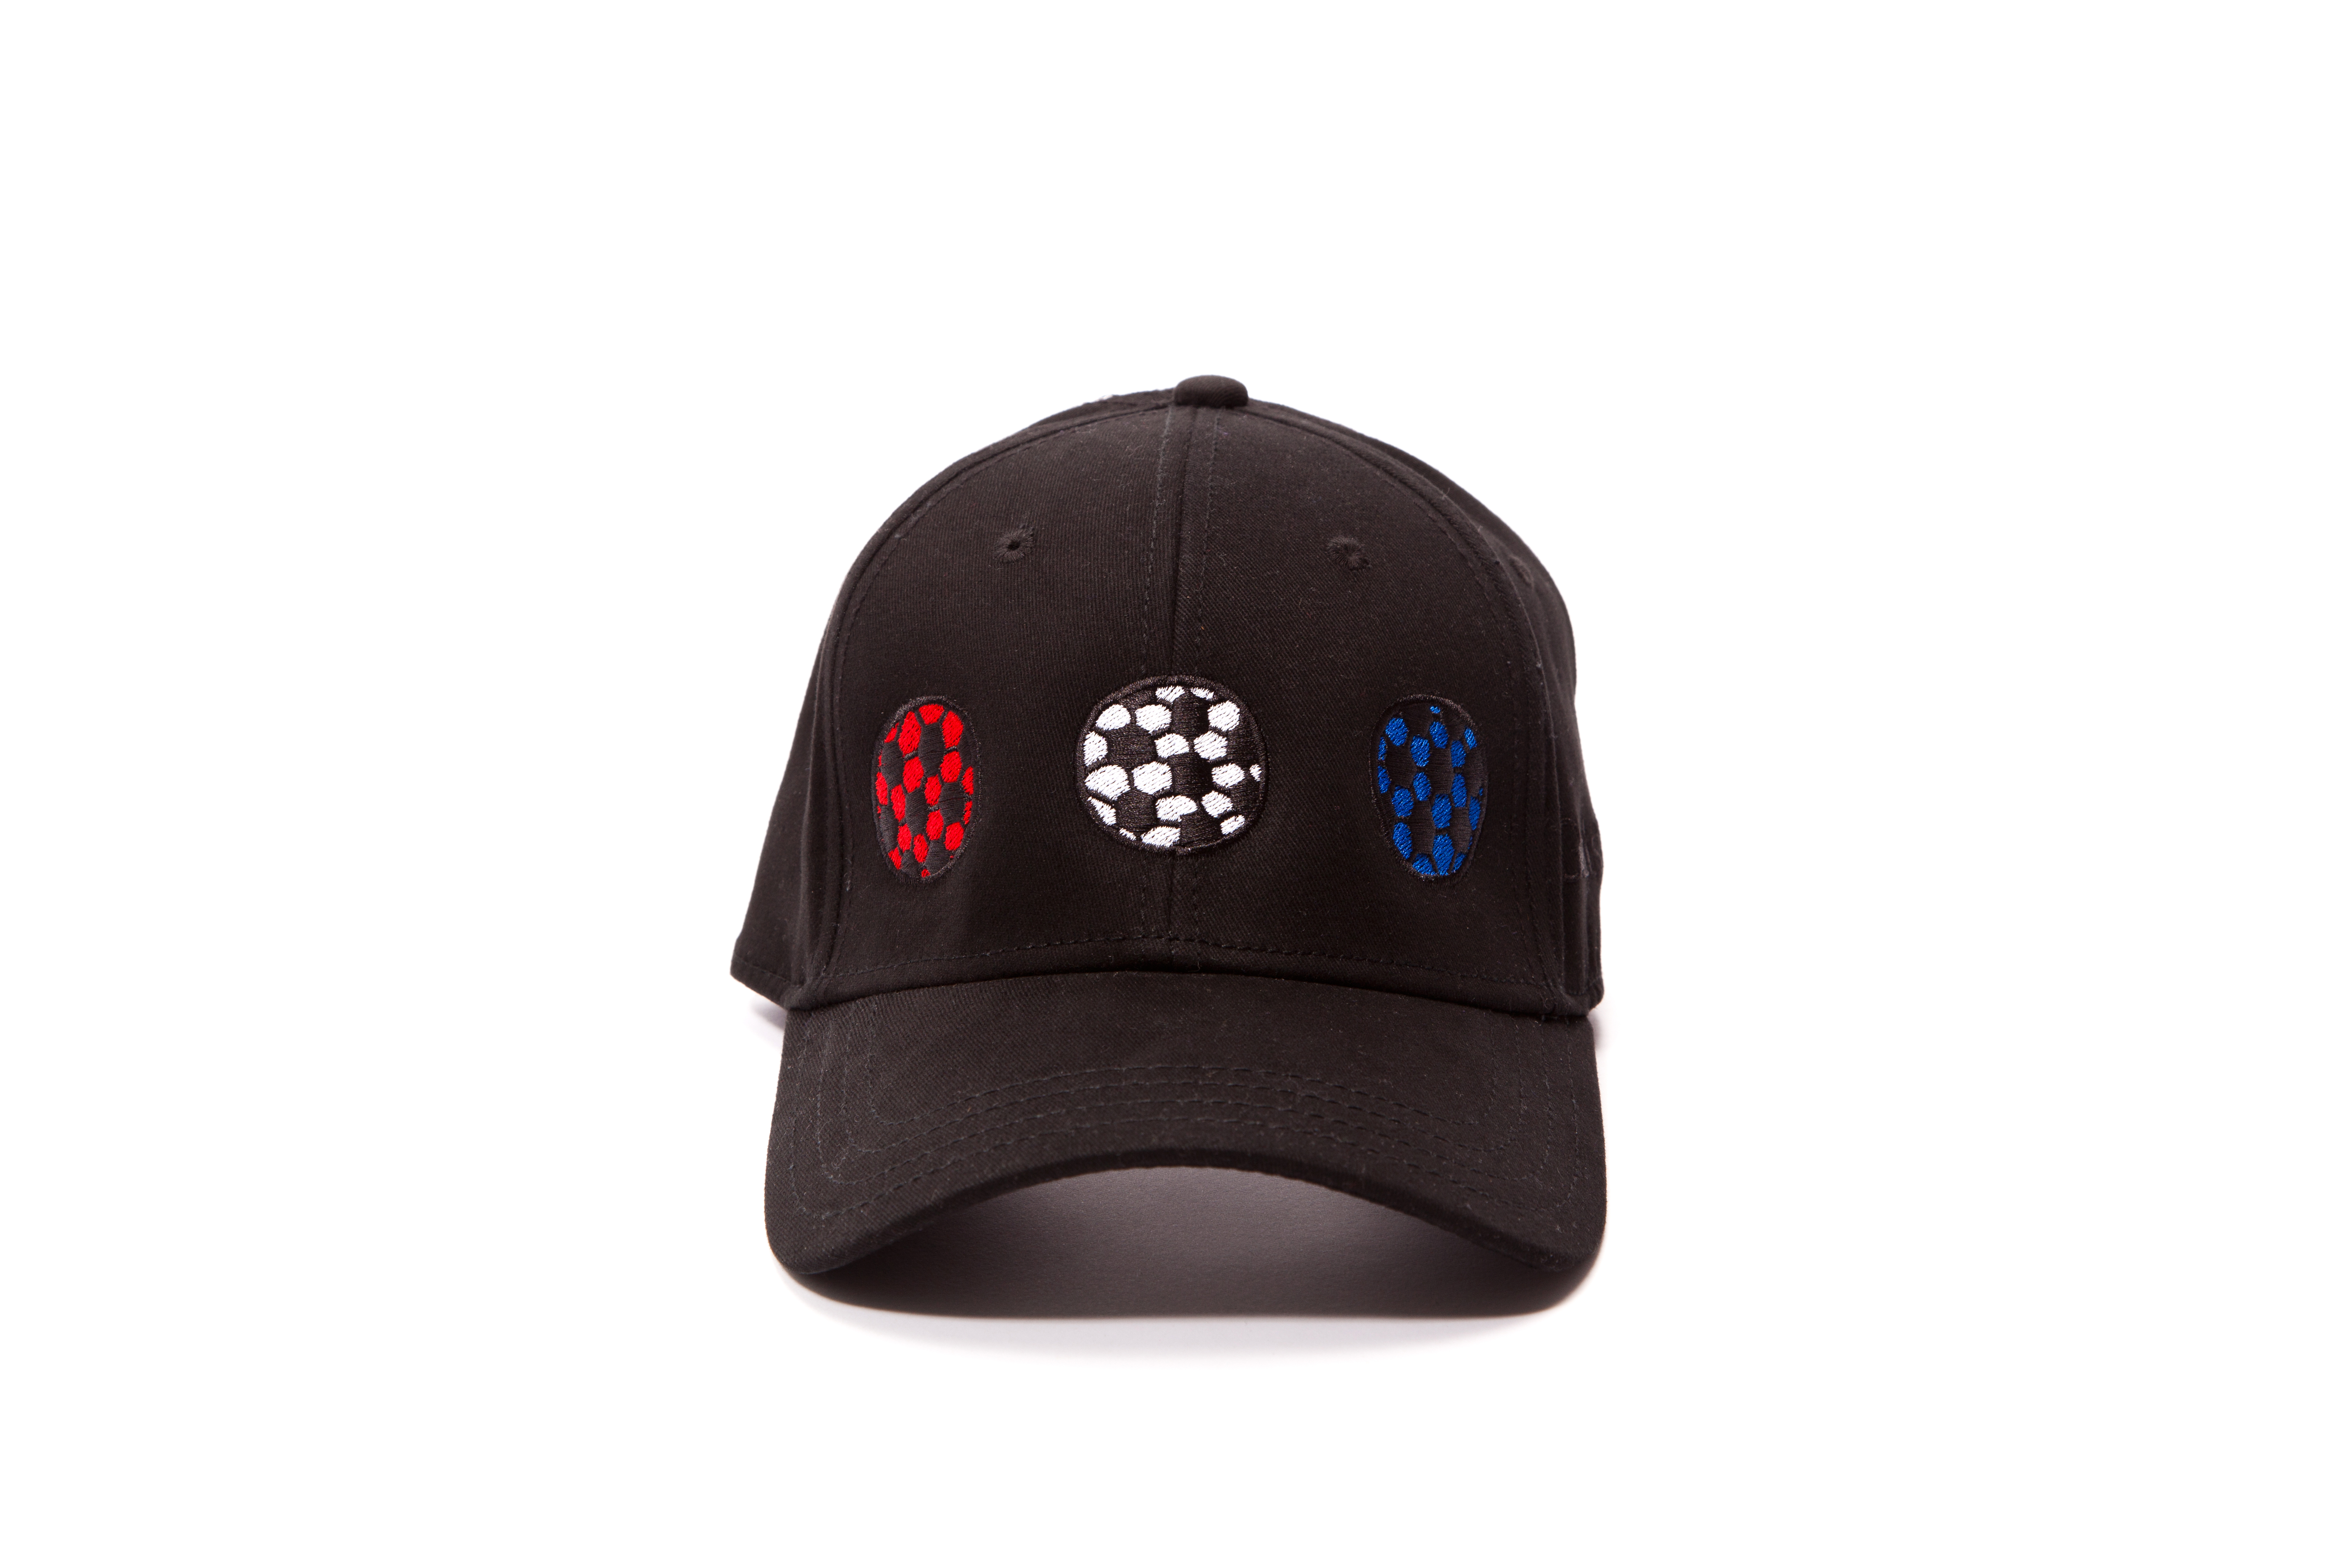 SYLE  First-Ever PEPSI  Live For Now  Capsule Collection Inspired By ... 03a5a846a1b6